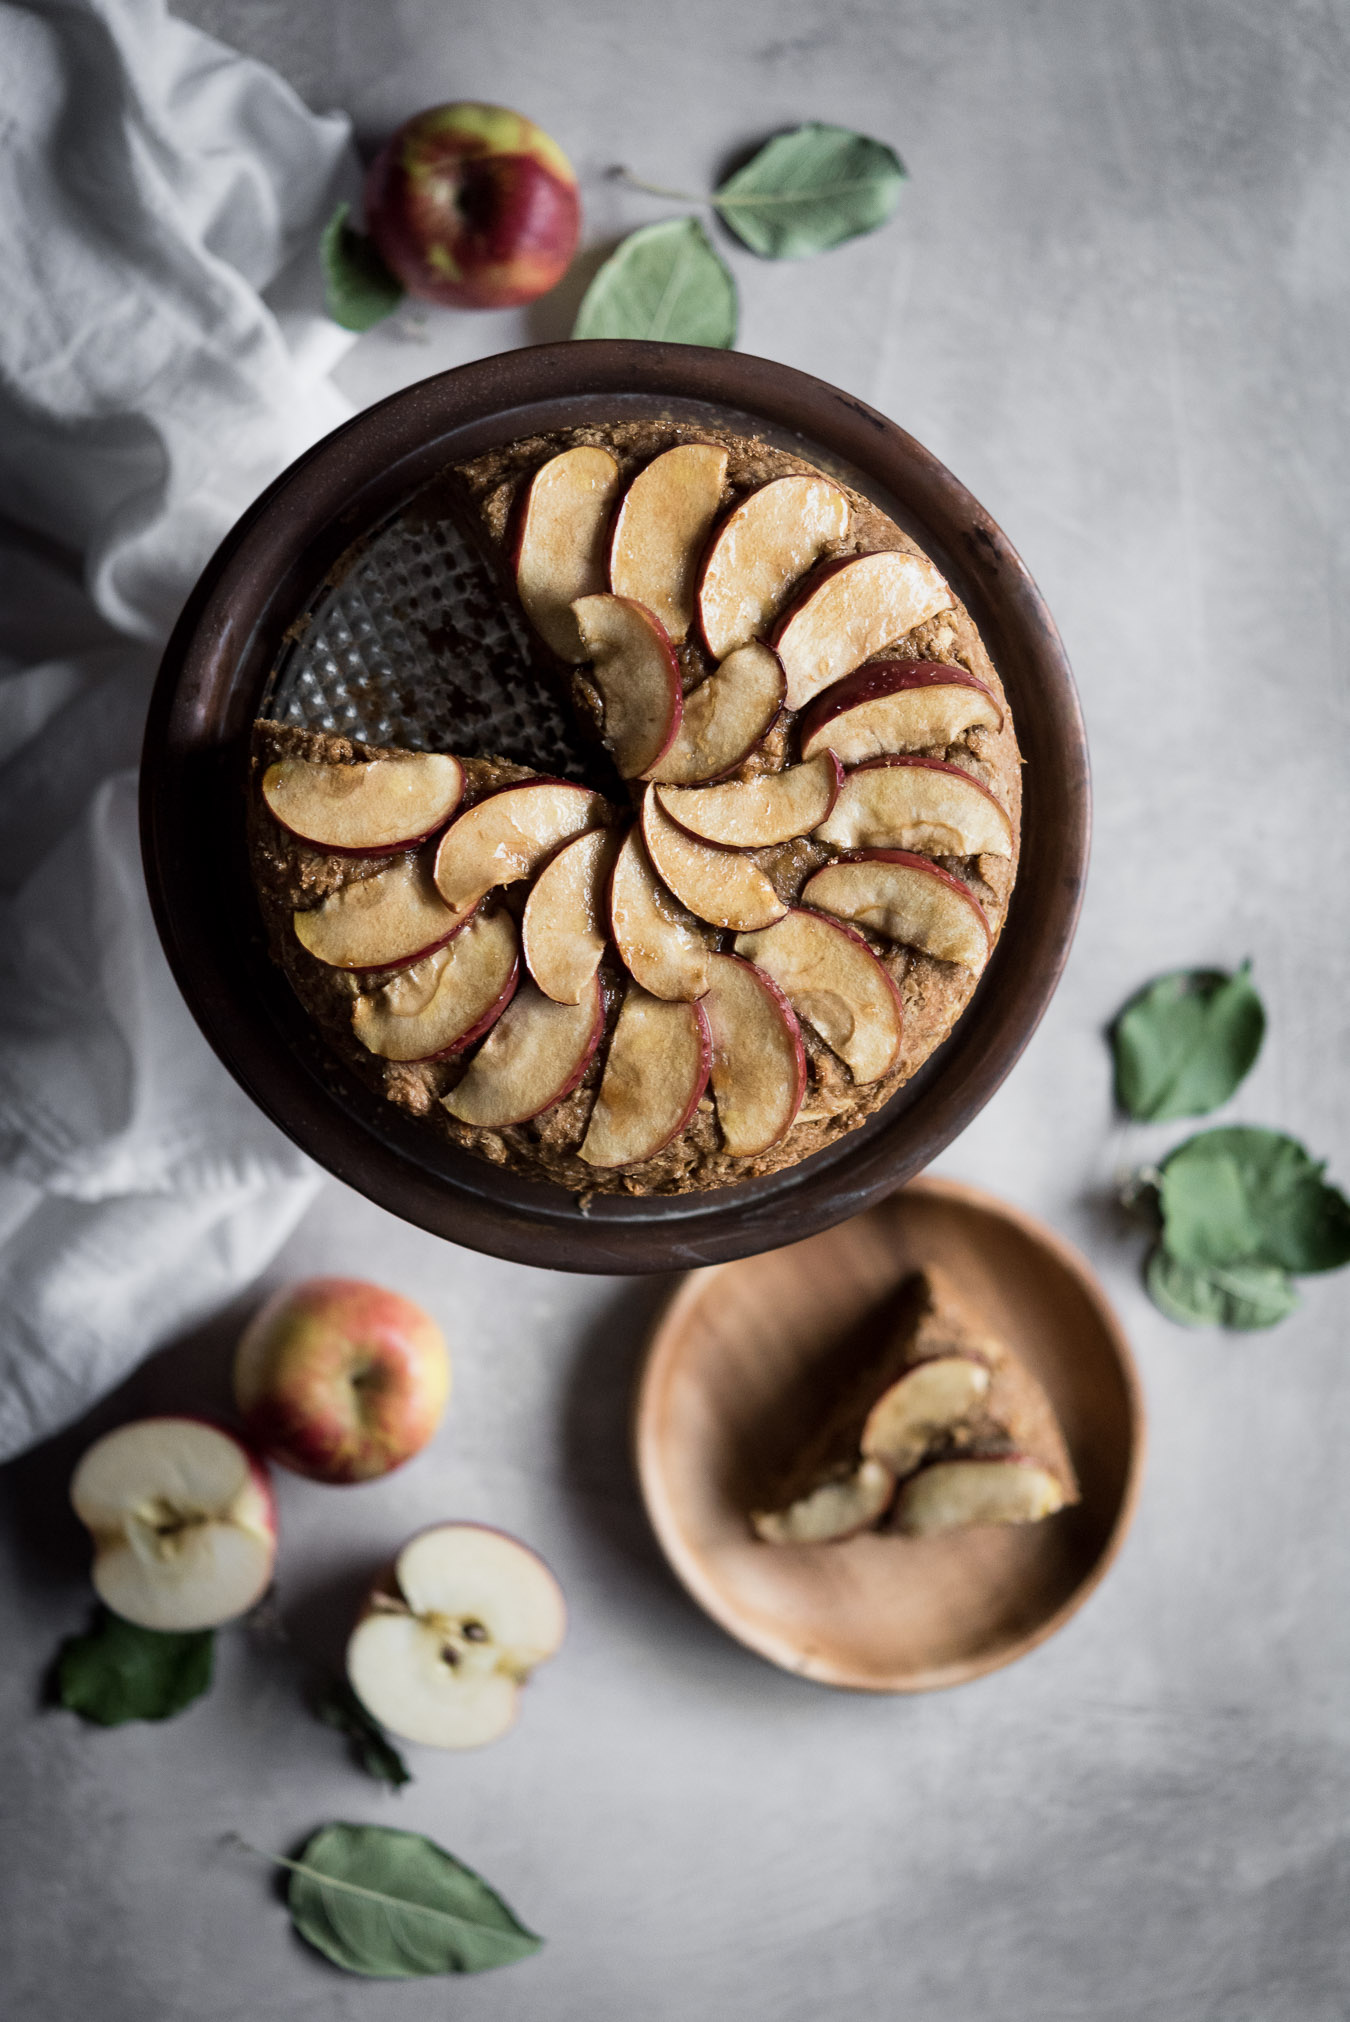 milopita - greek apple & olive oil cake